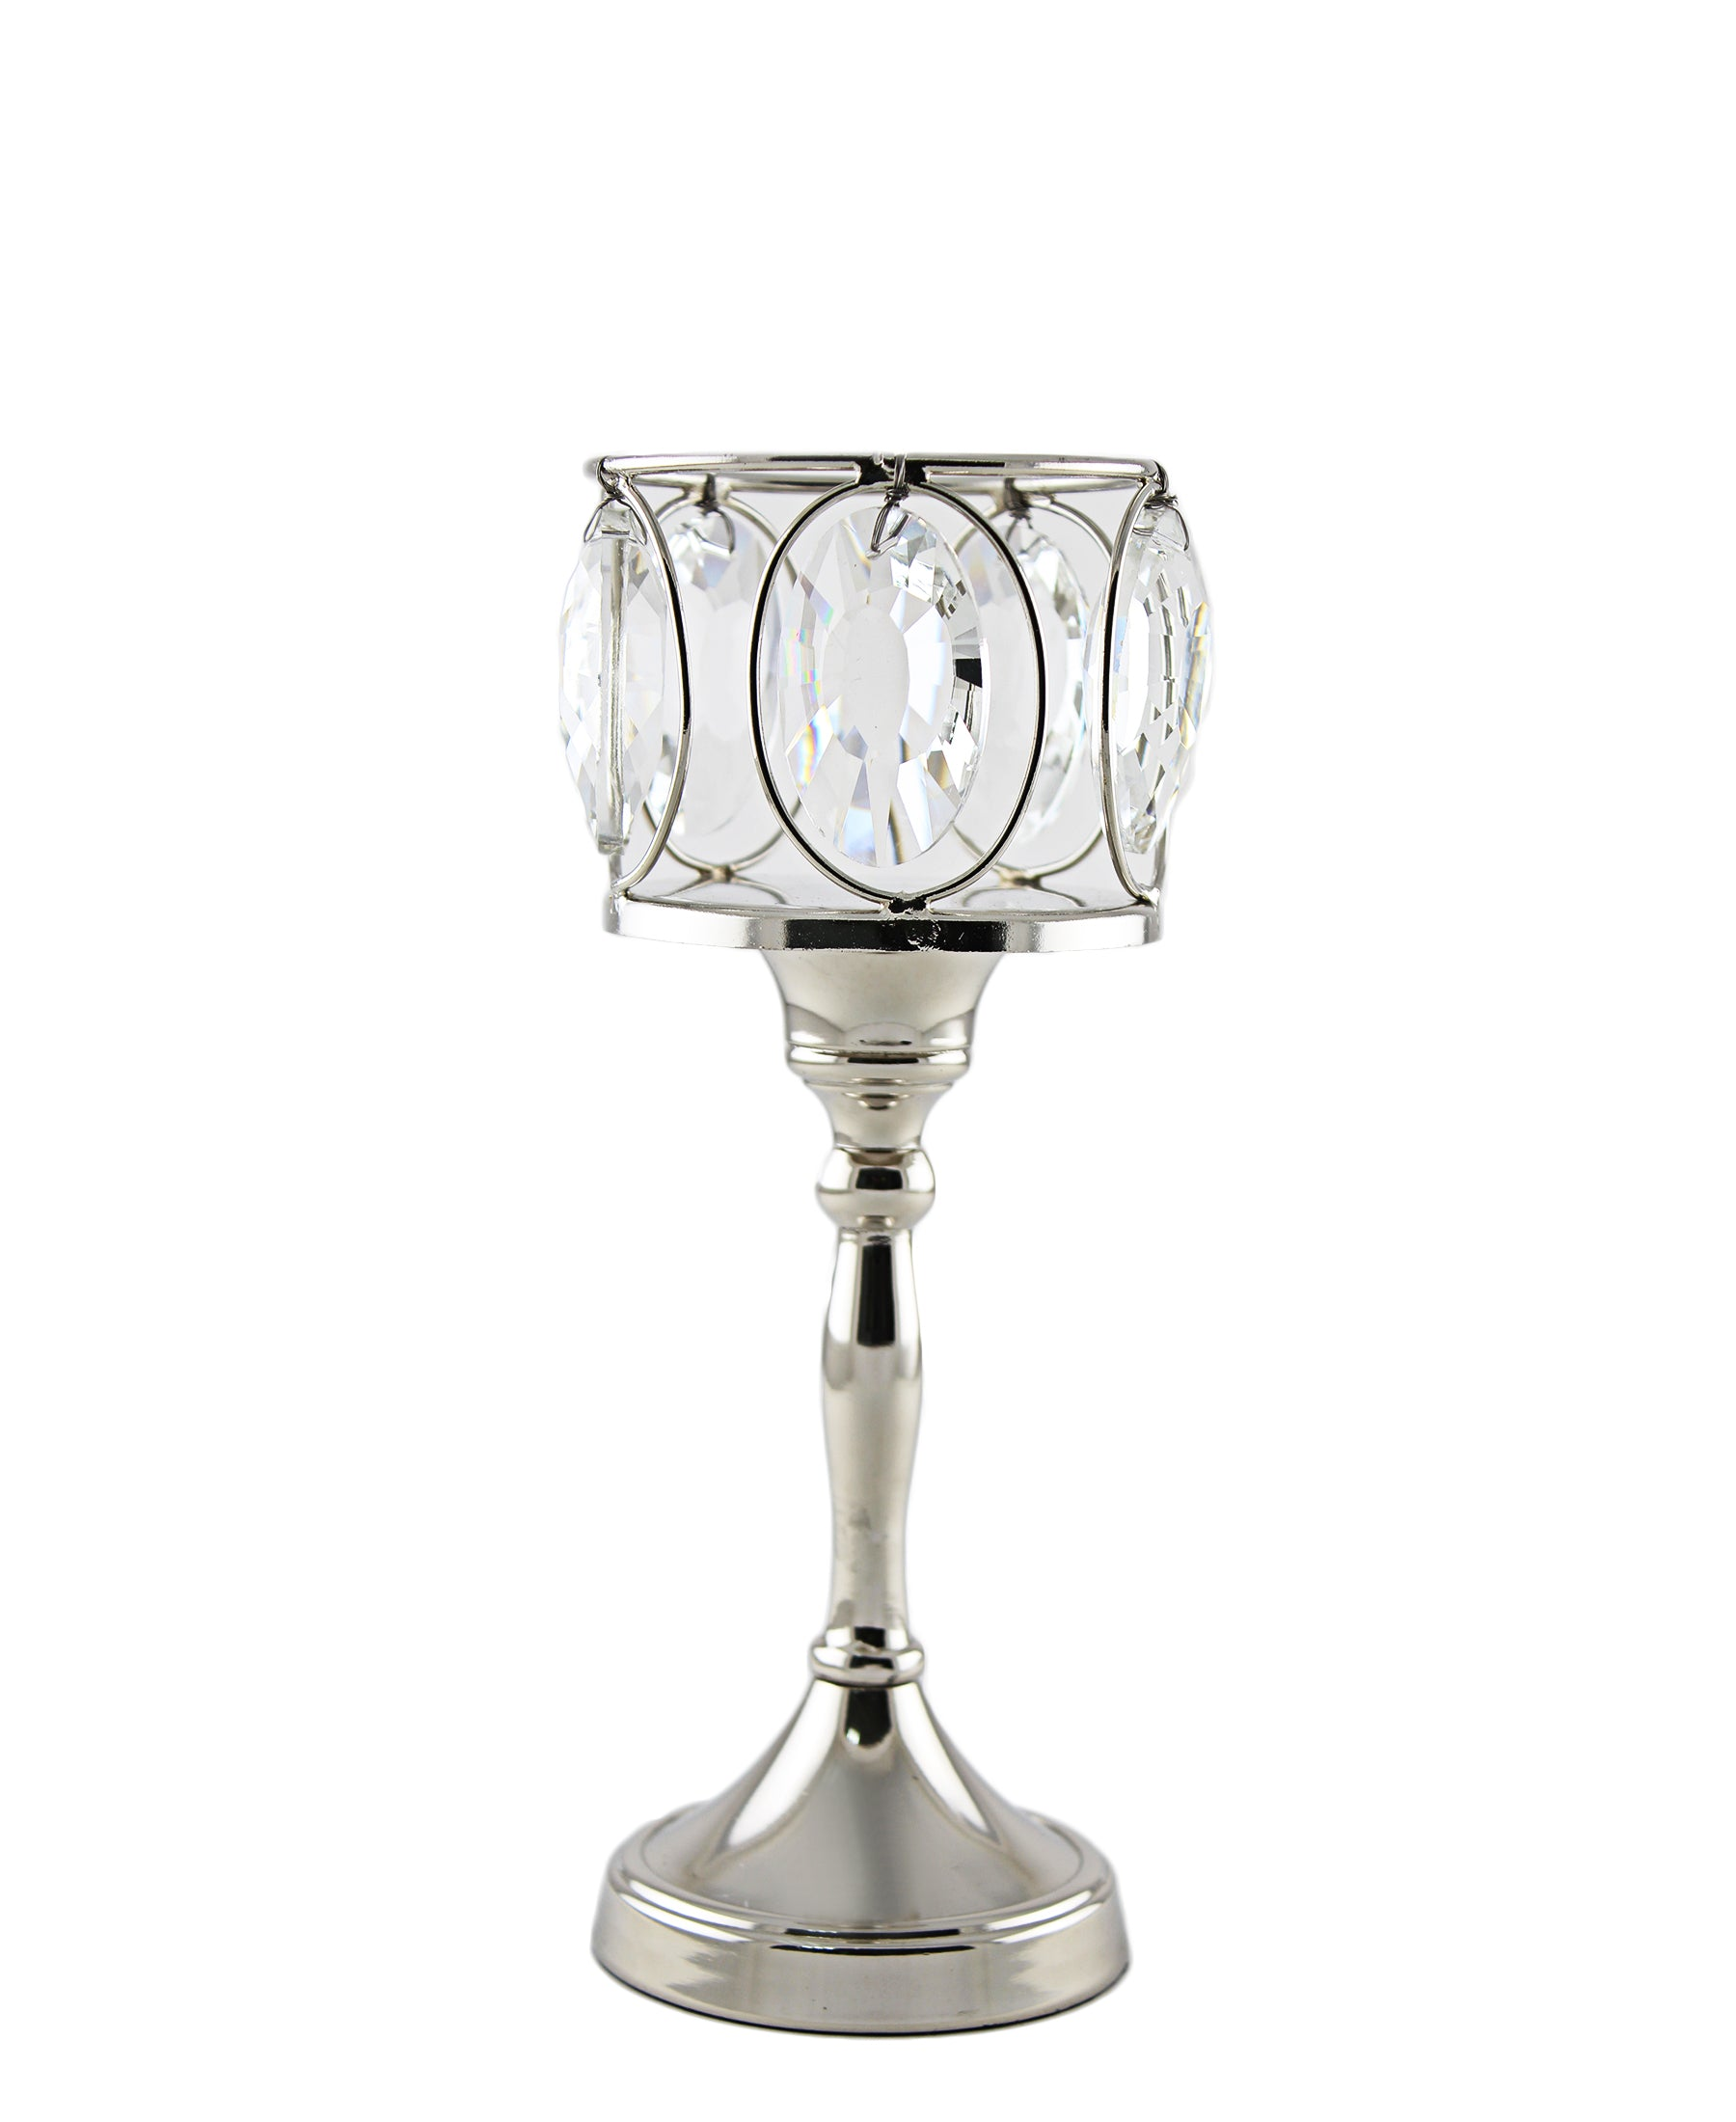 Majestic Crystal T-Lite On Stand - Silver